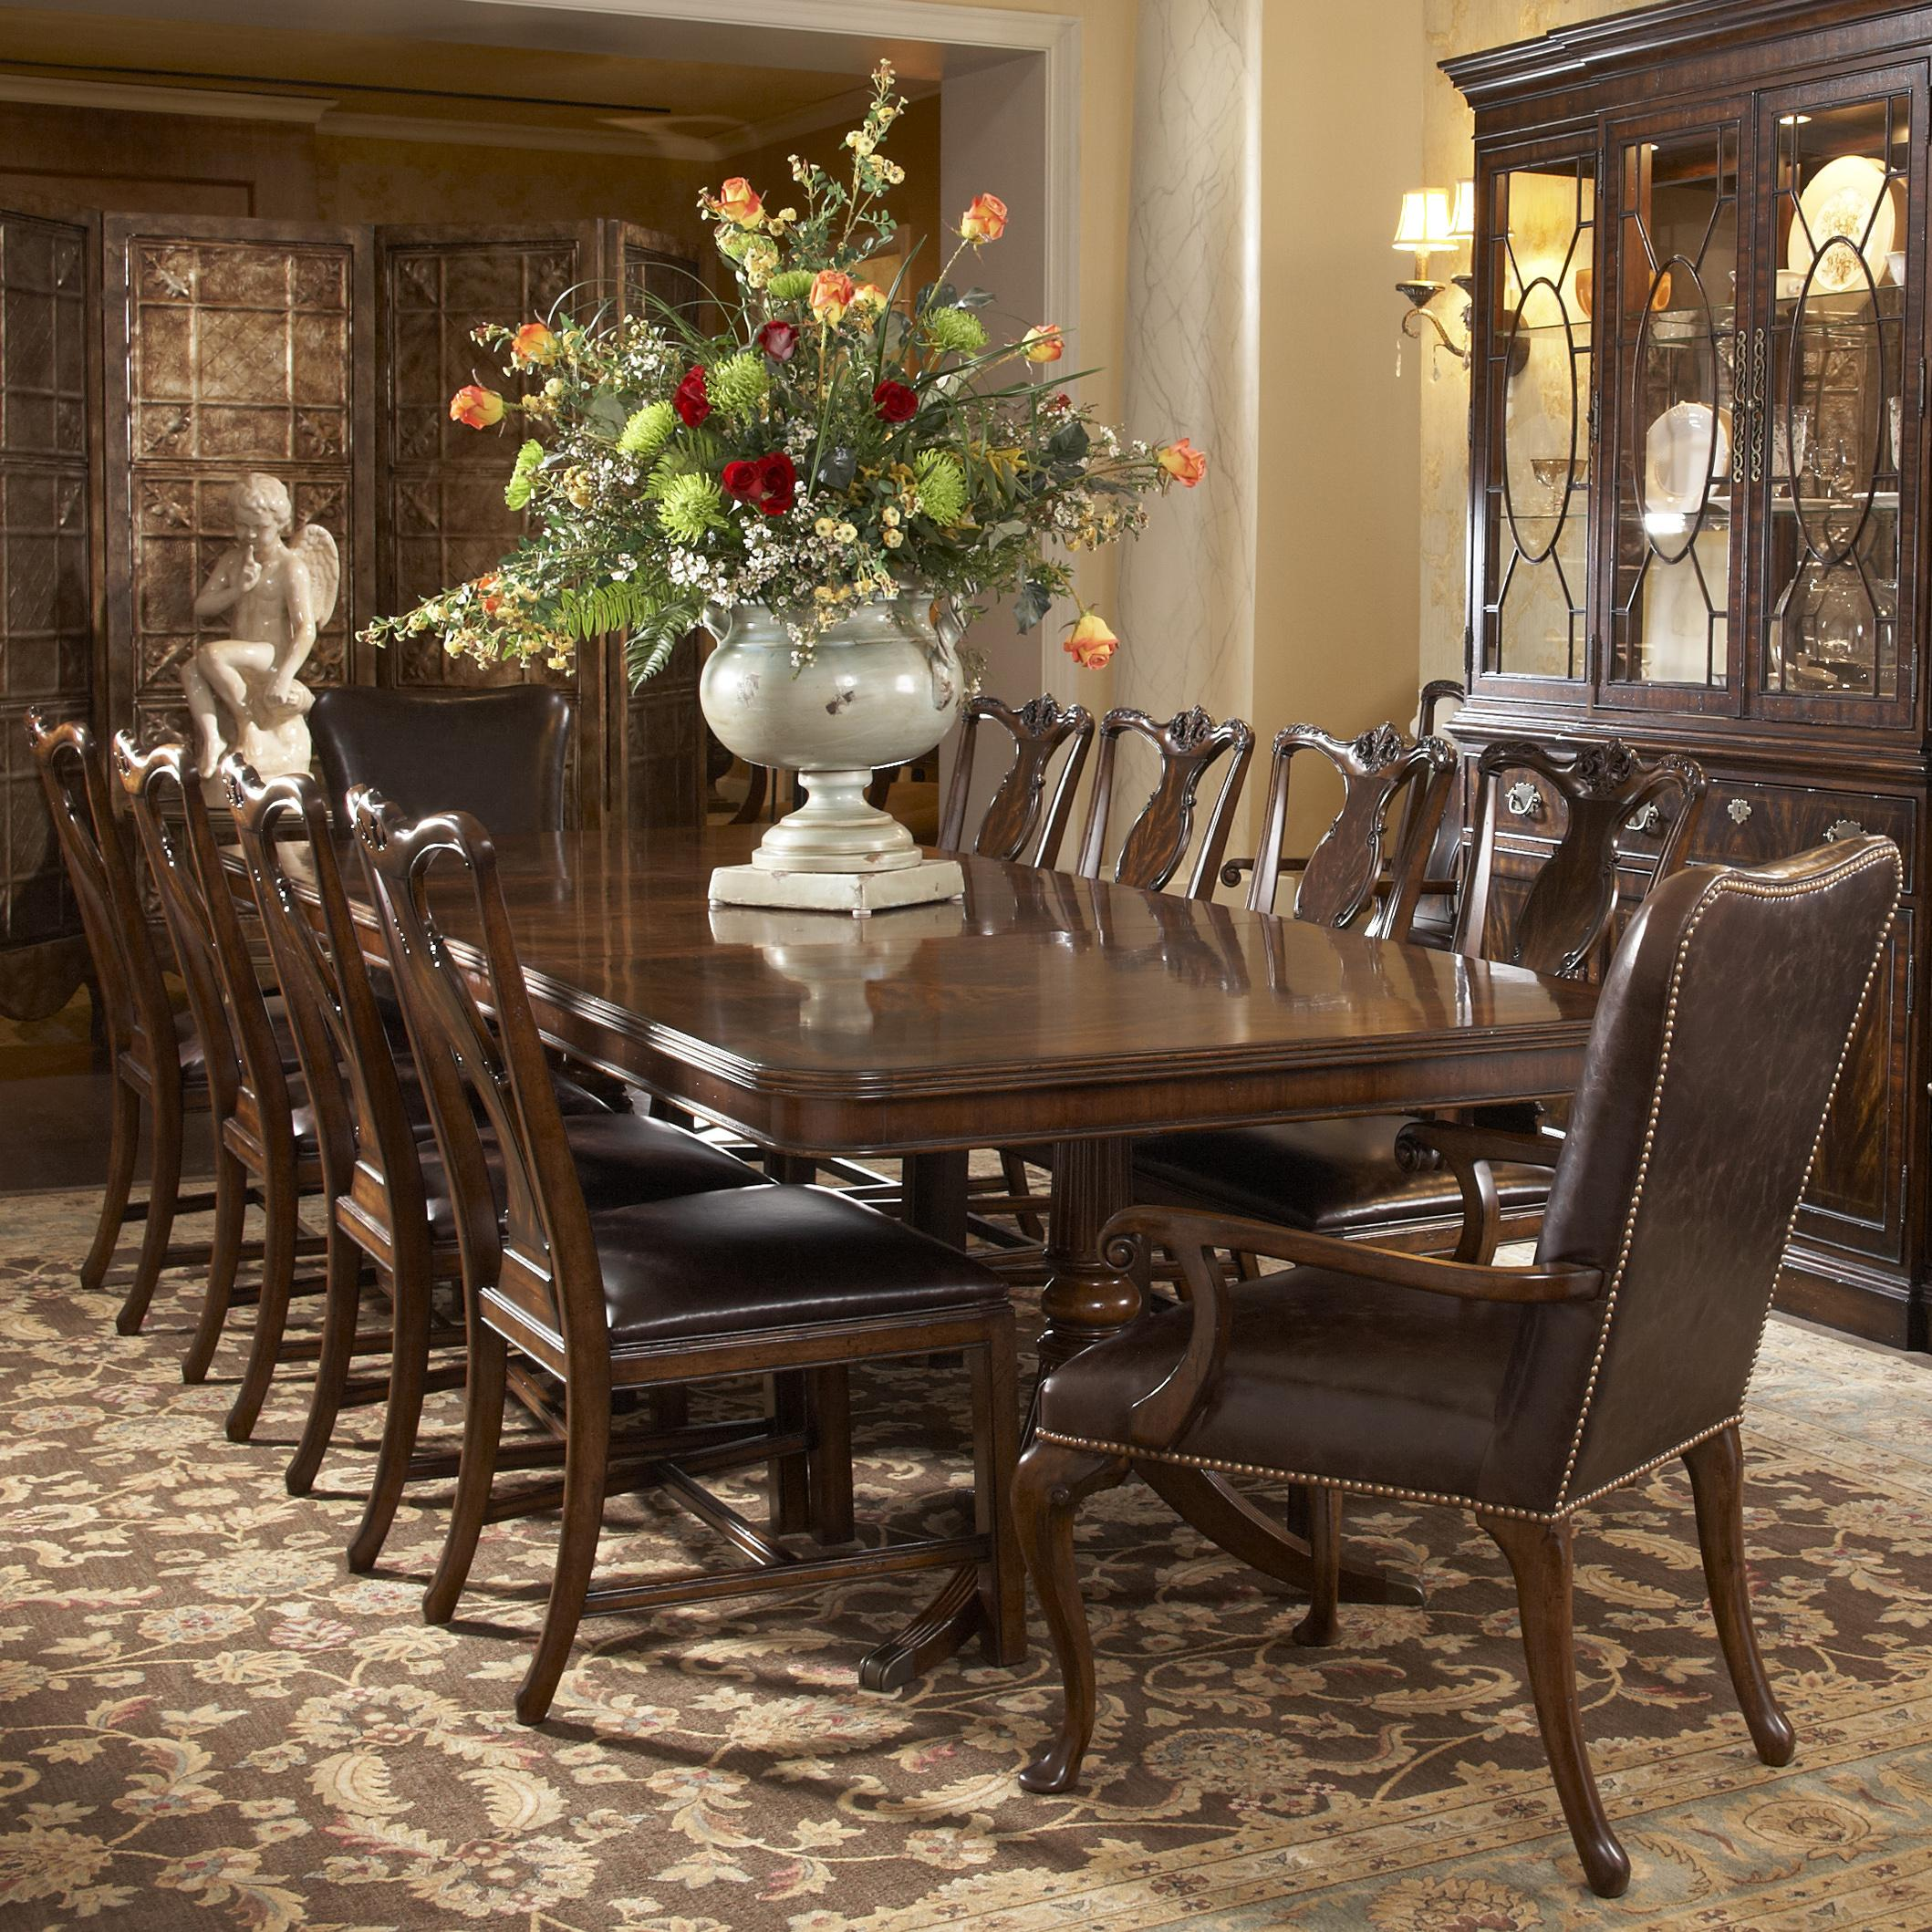 dining room is important room for you and your family for having nice